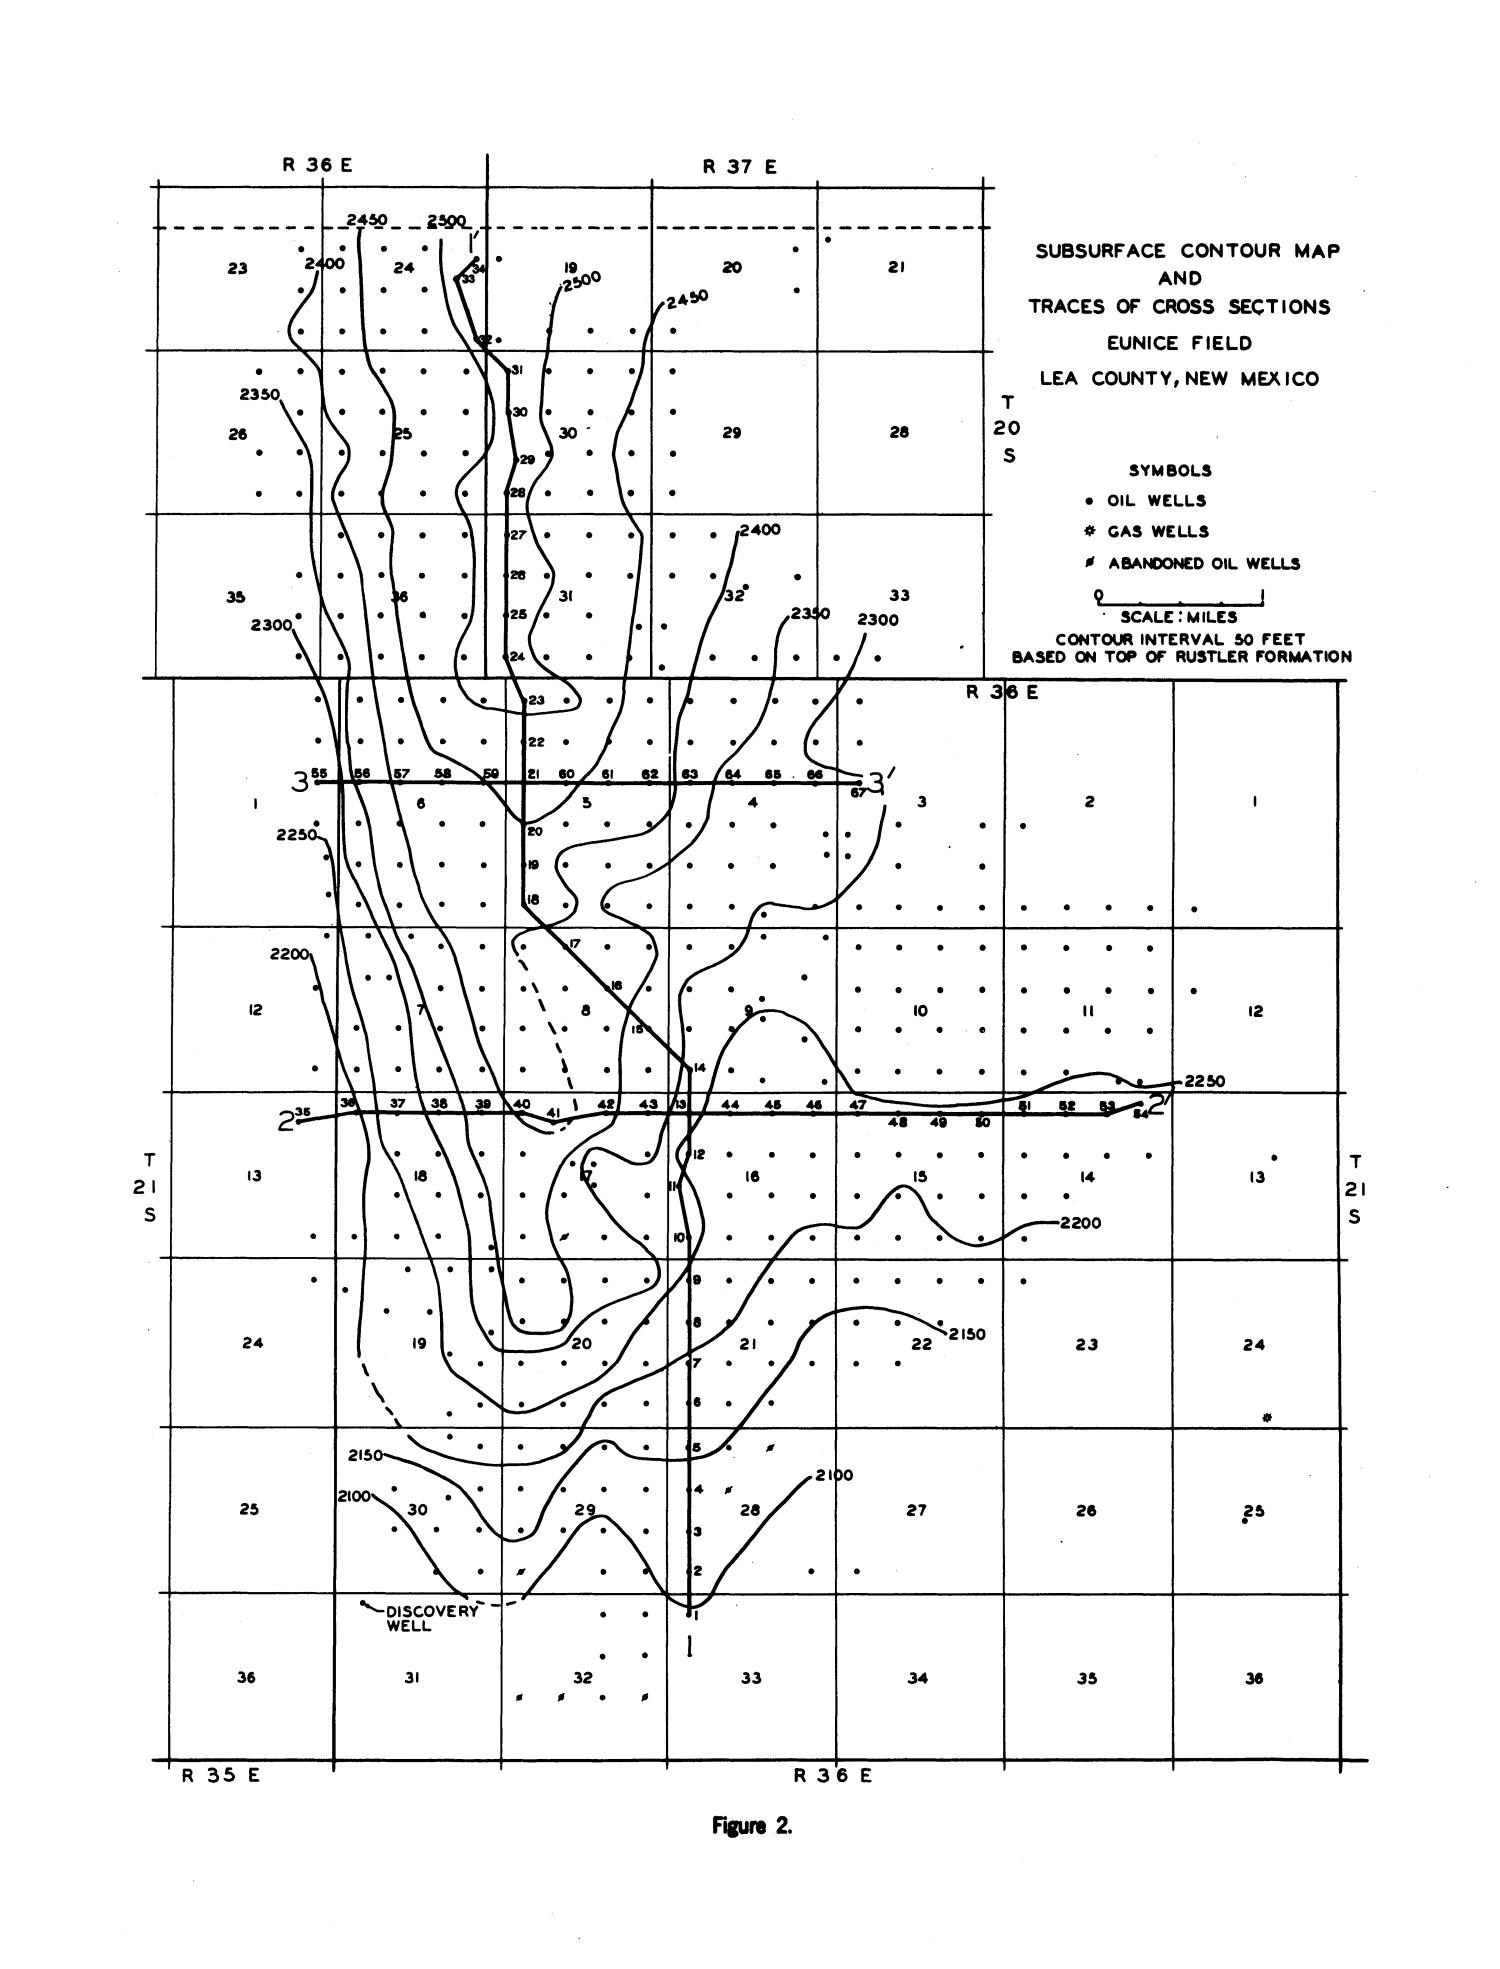 New mexico lea county eunice - Reservoir Characteristics Of The Eunice Oil Field Lea County New Mexico Page 7 Digital Library